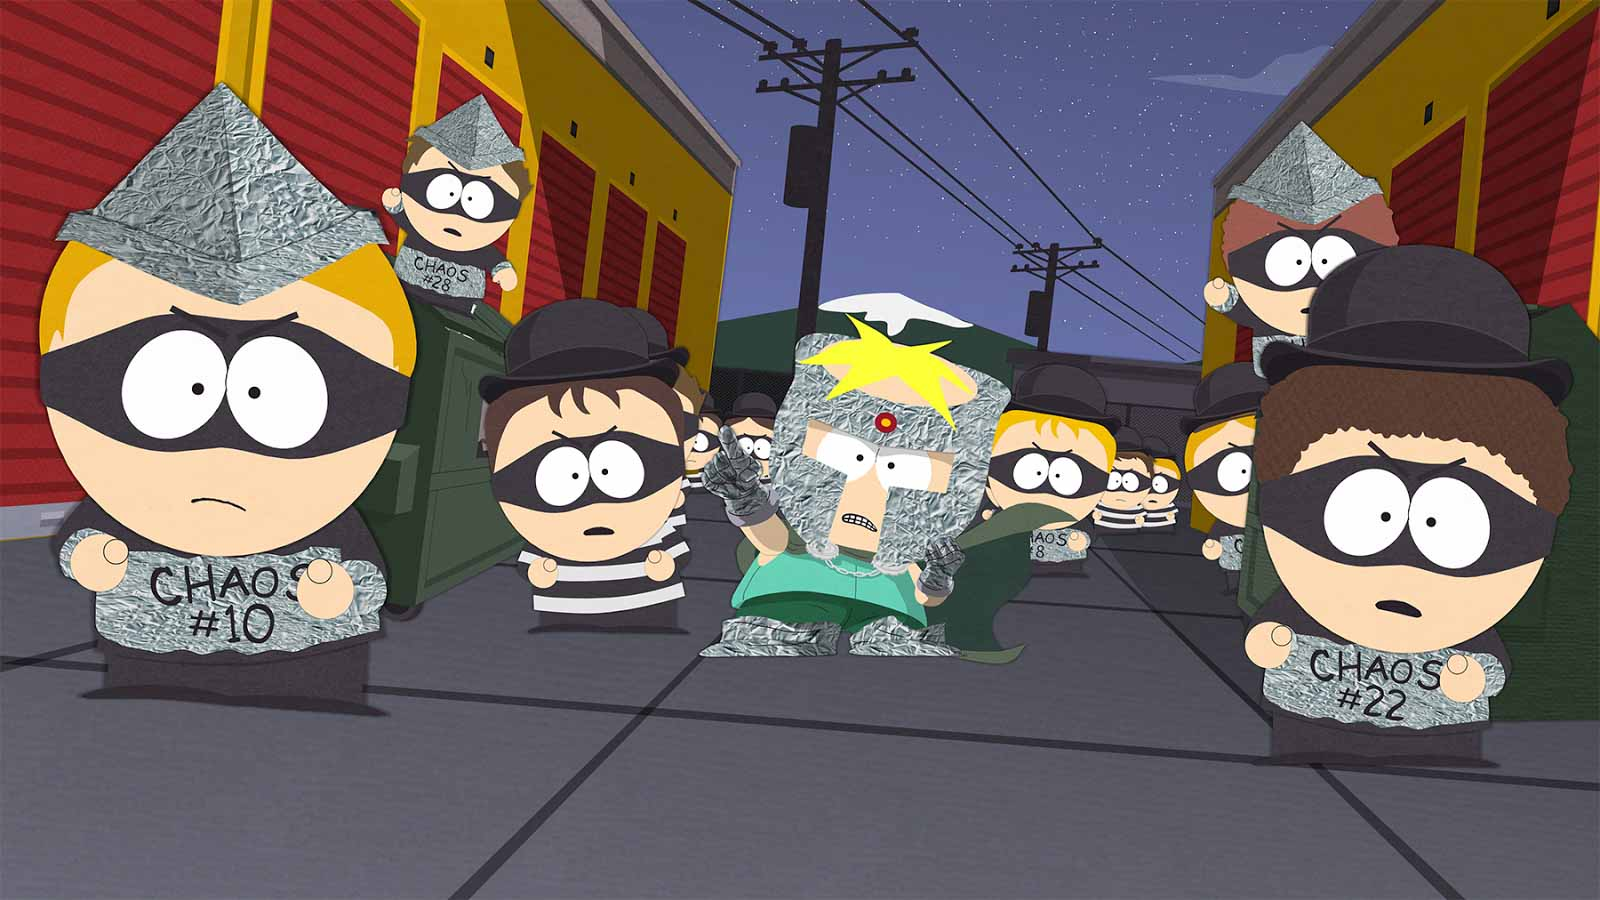 South Park The Fractured But Whole - Professor Chaos' Army